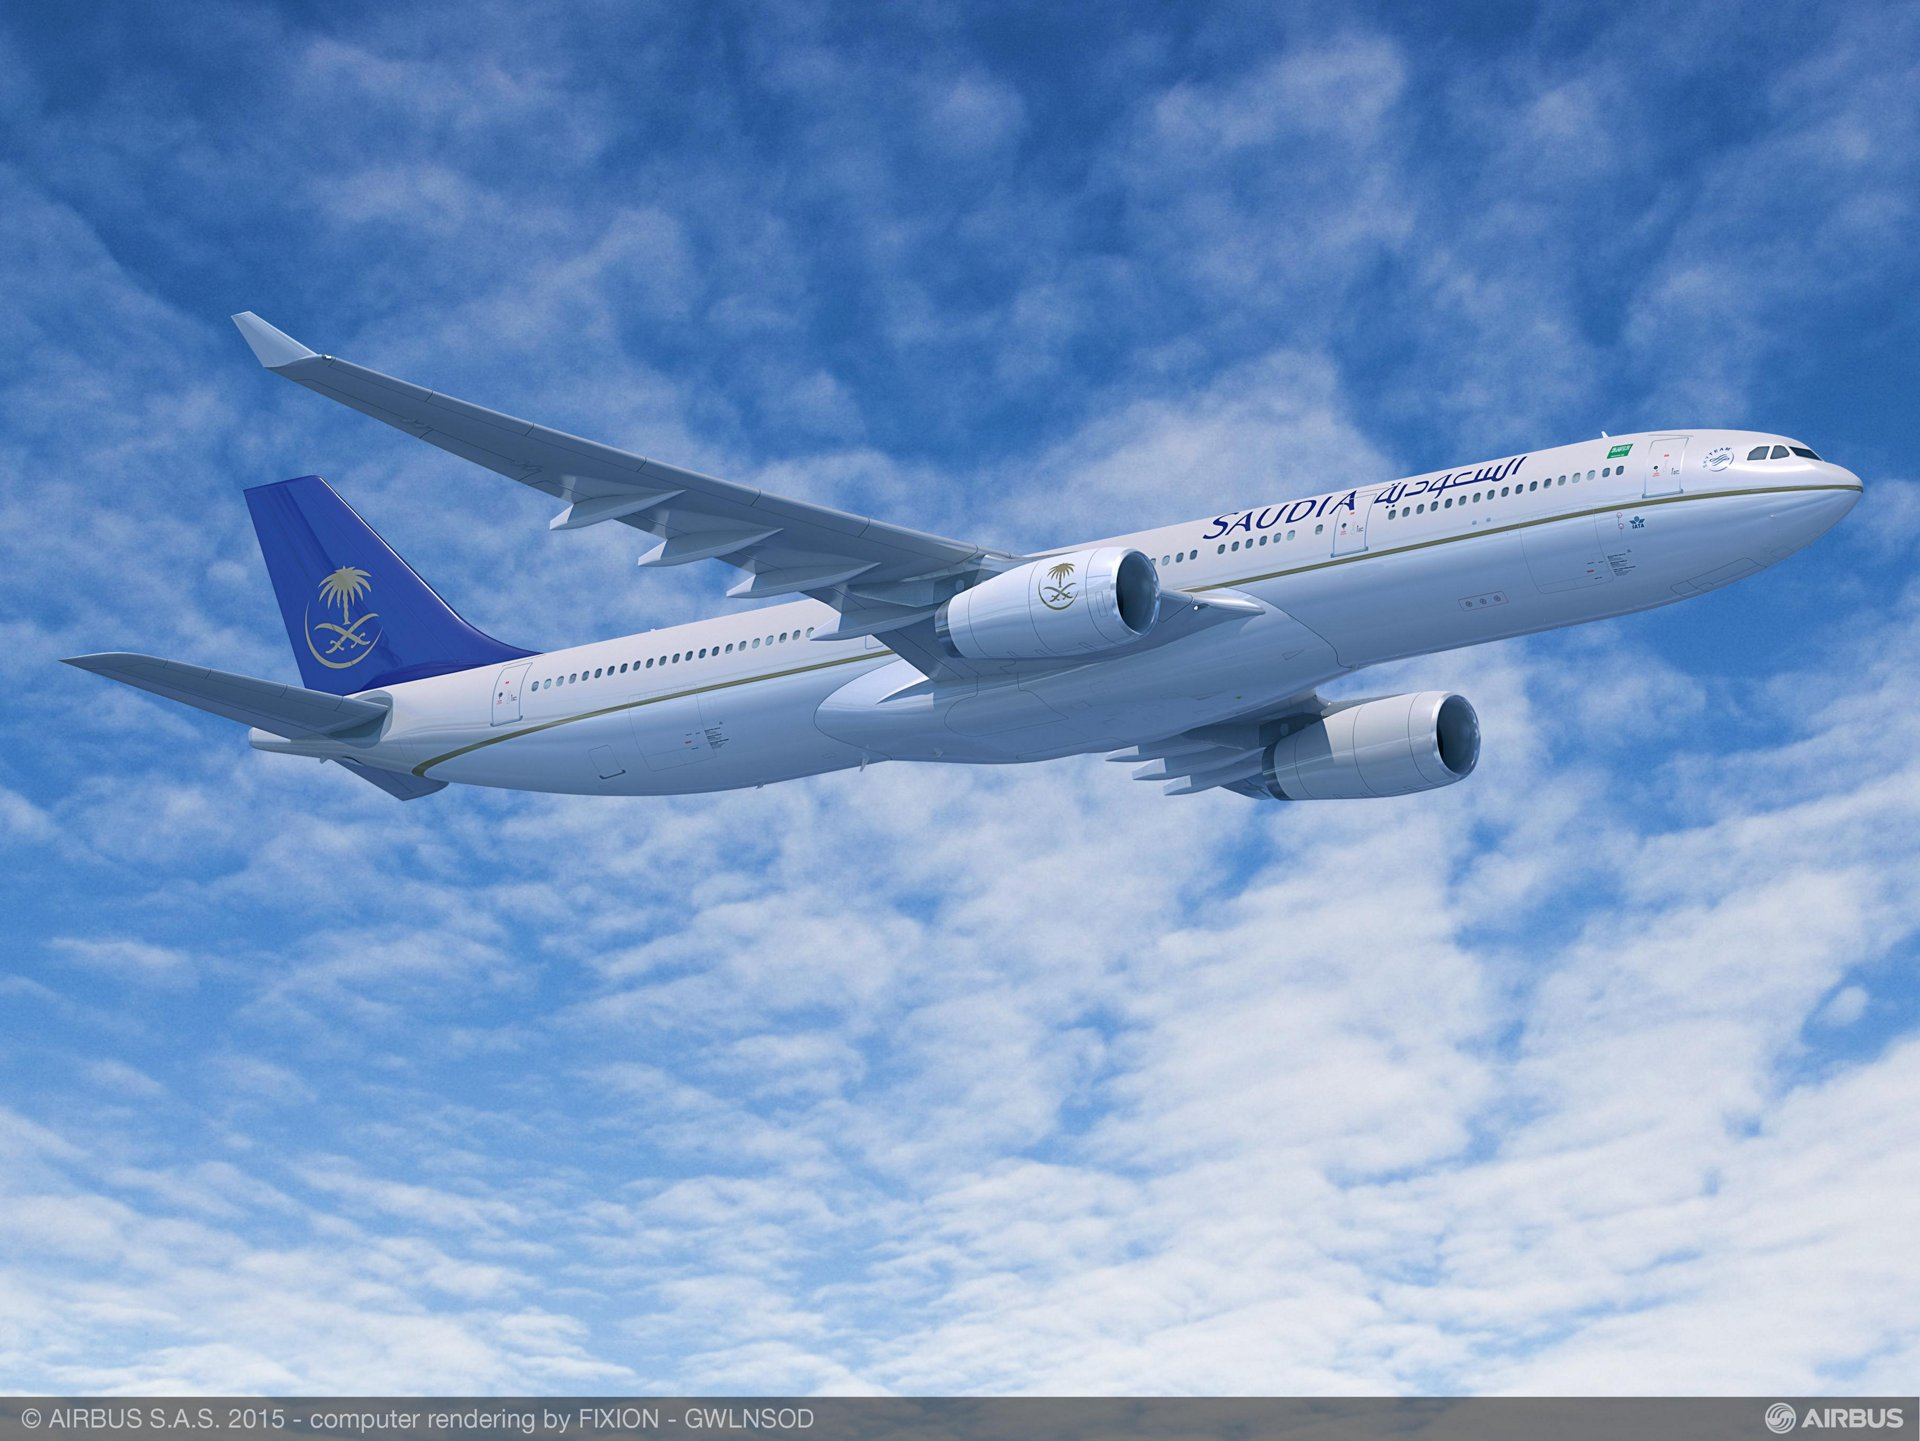 Announced on 15 June 2015, the national carrier of Saudi Arabia – Saudi Arabian Airlines – will become the launch operator of the A330-300 Regional, which is optimised for regional and domestic operations in high-growth regions  -